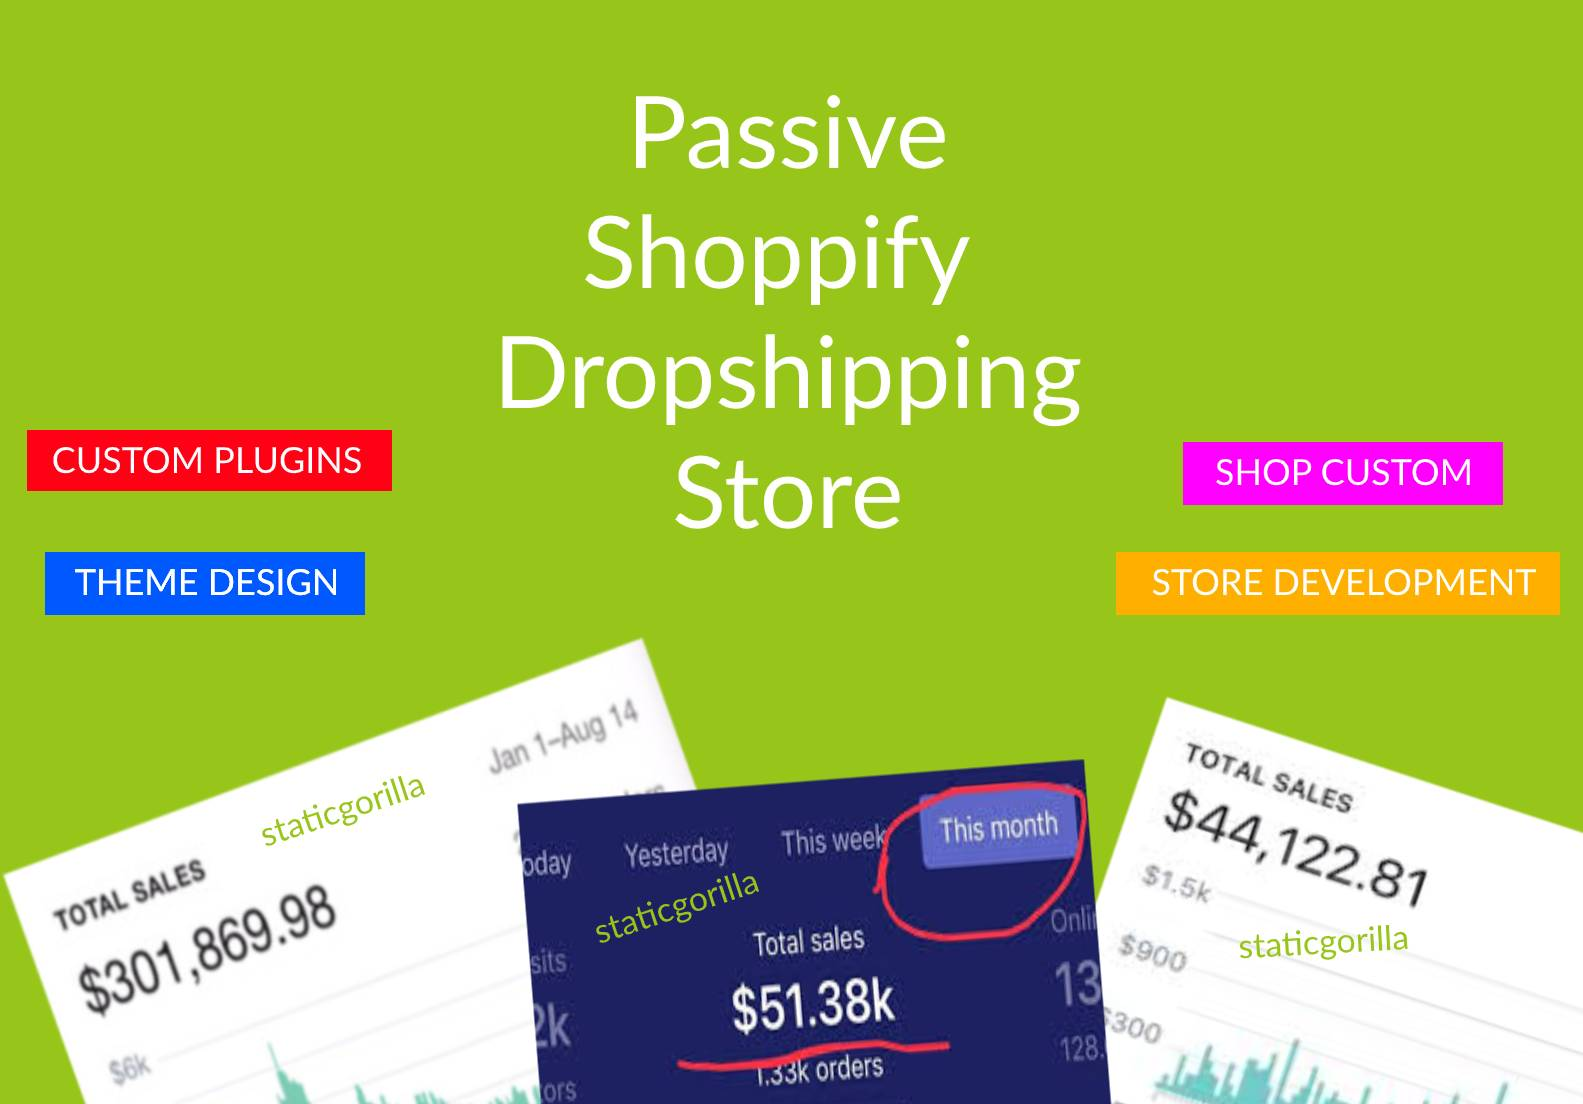 Get a well designed Passive E-Commerce/Online Shopping Dropshipping Store Ready in 5 days